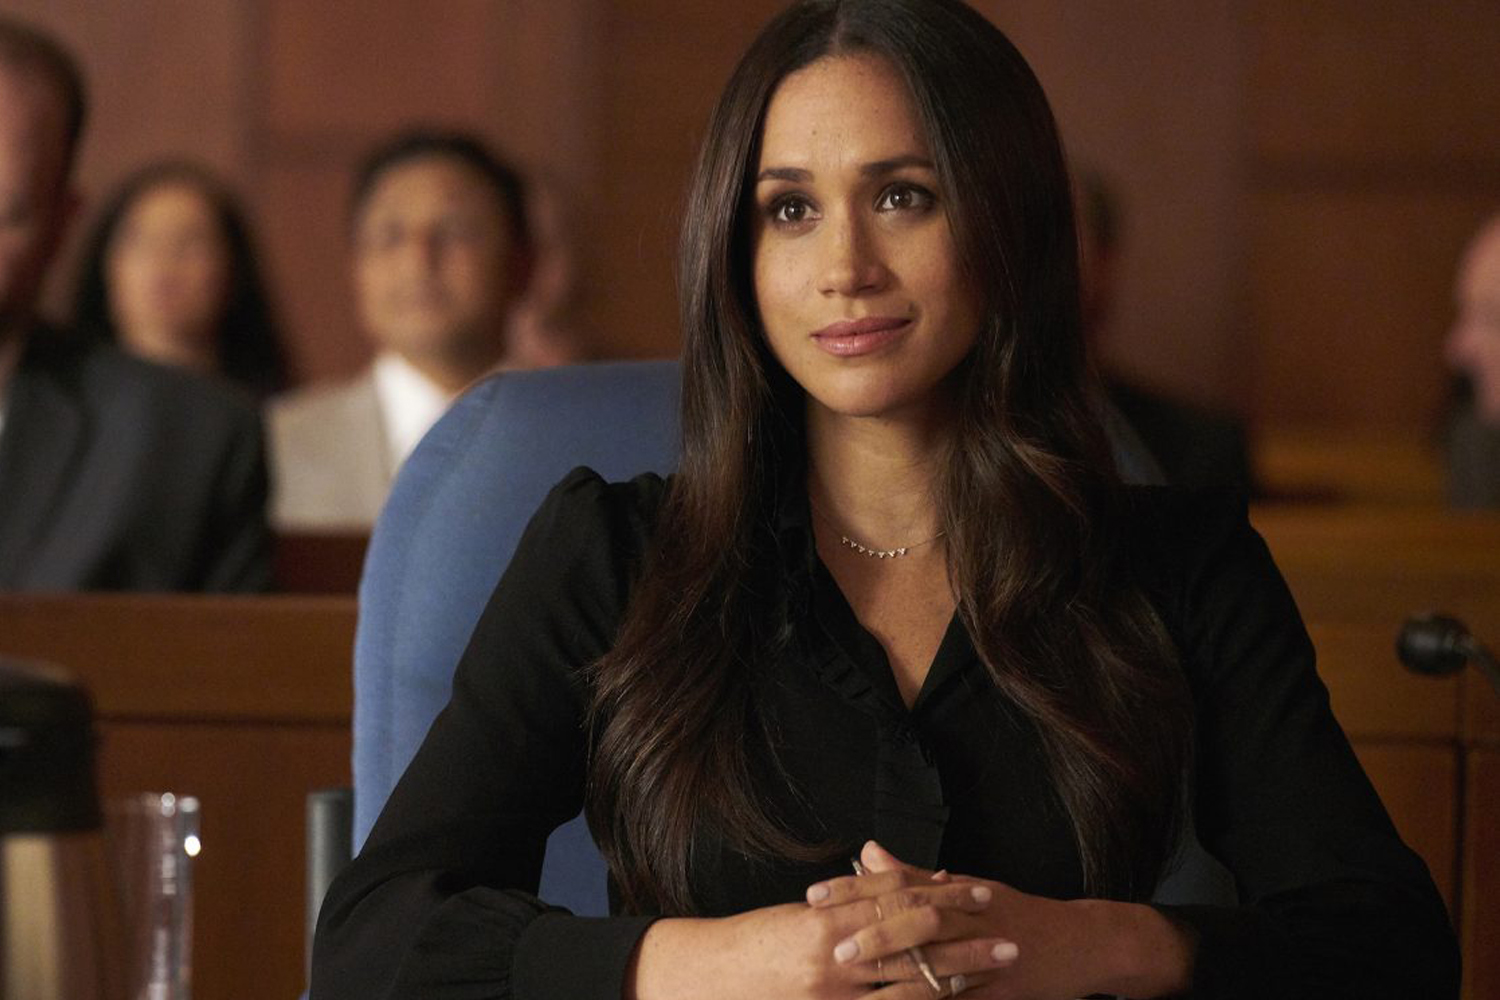 meghan markle s suits outfits are giving us serious work style inspiration meghan markle s suits outfits are